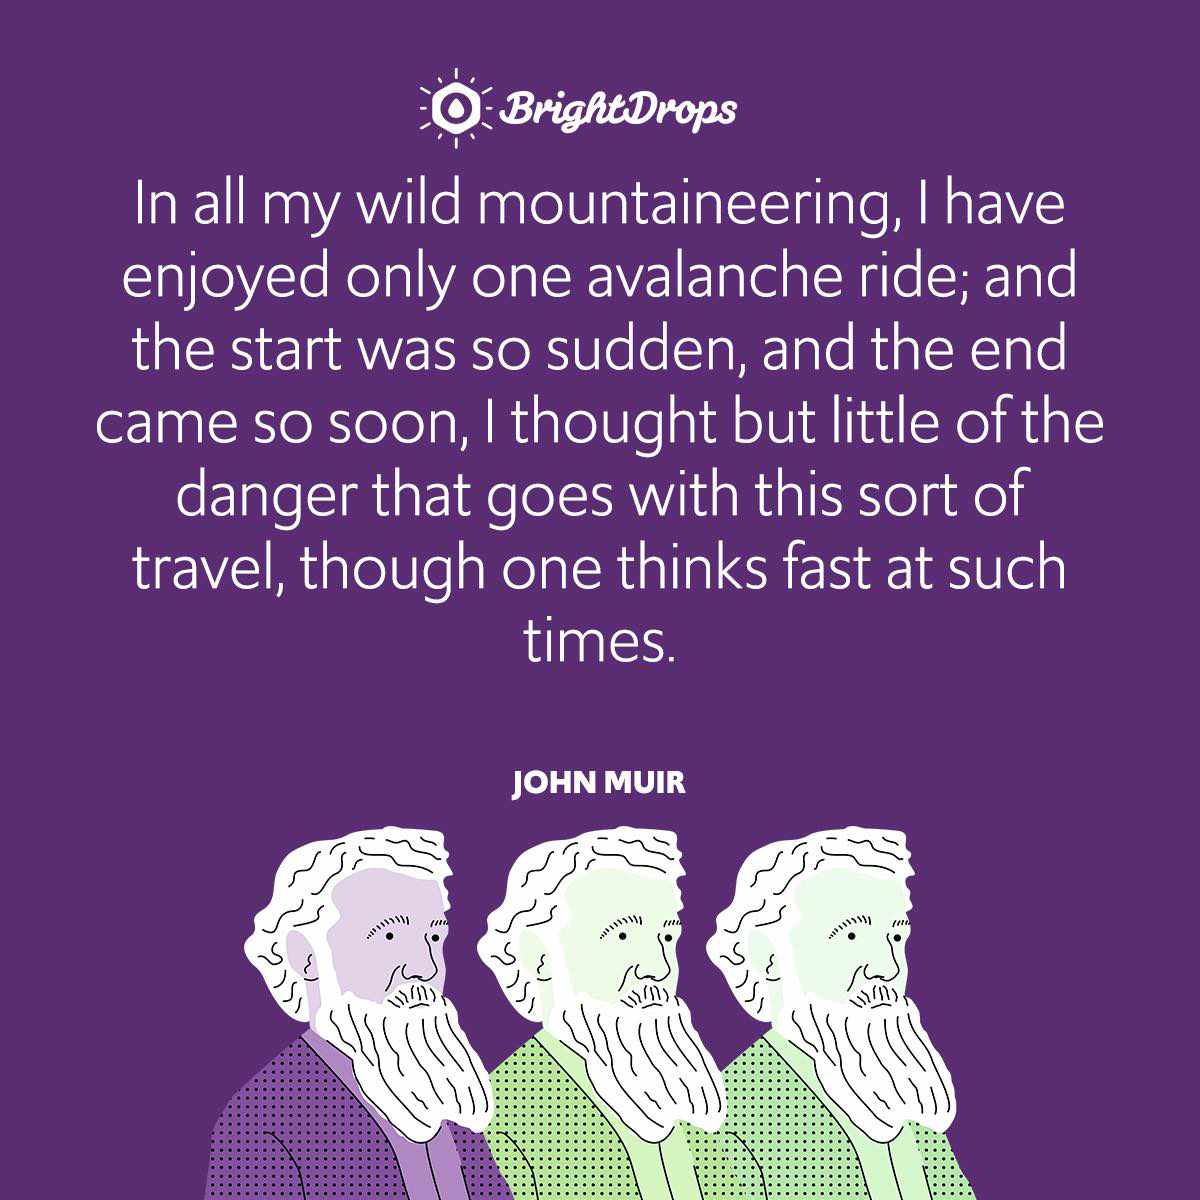 In all my wild mountaineering, I have enjoyed only one avalanche ride; and the start was so sudden, and the end came so soon, I thought but little of the danger that goes with this sort of travel, though one thinks fast at such times.